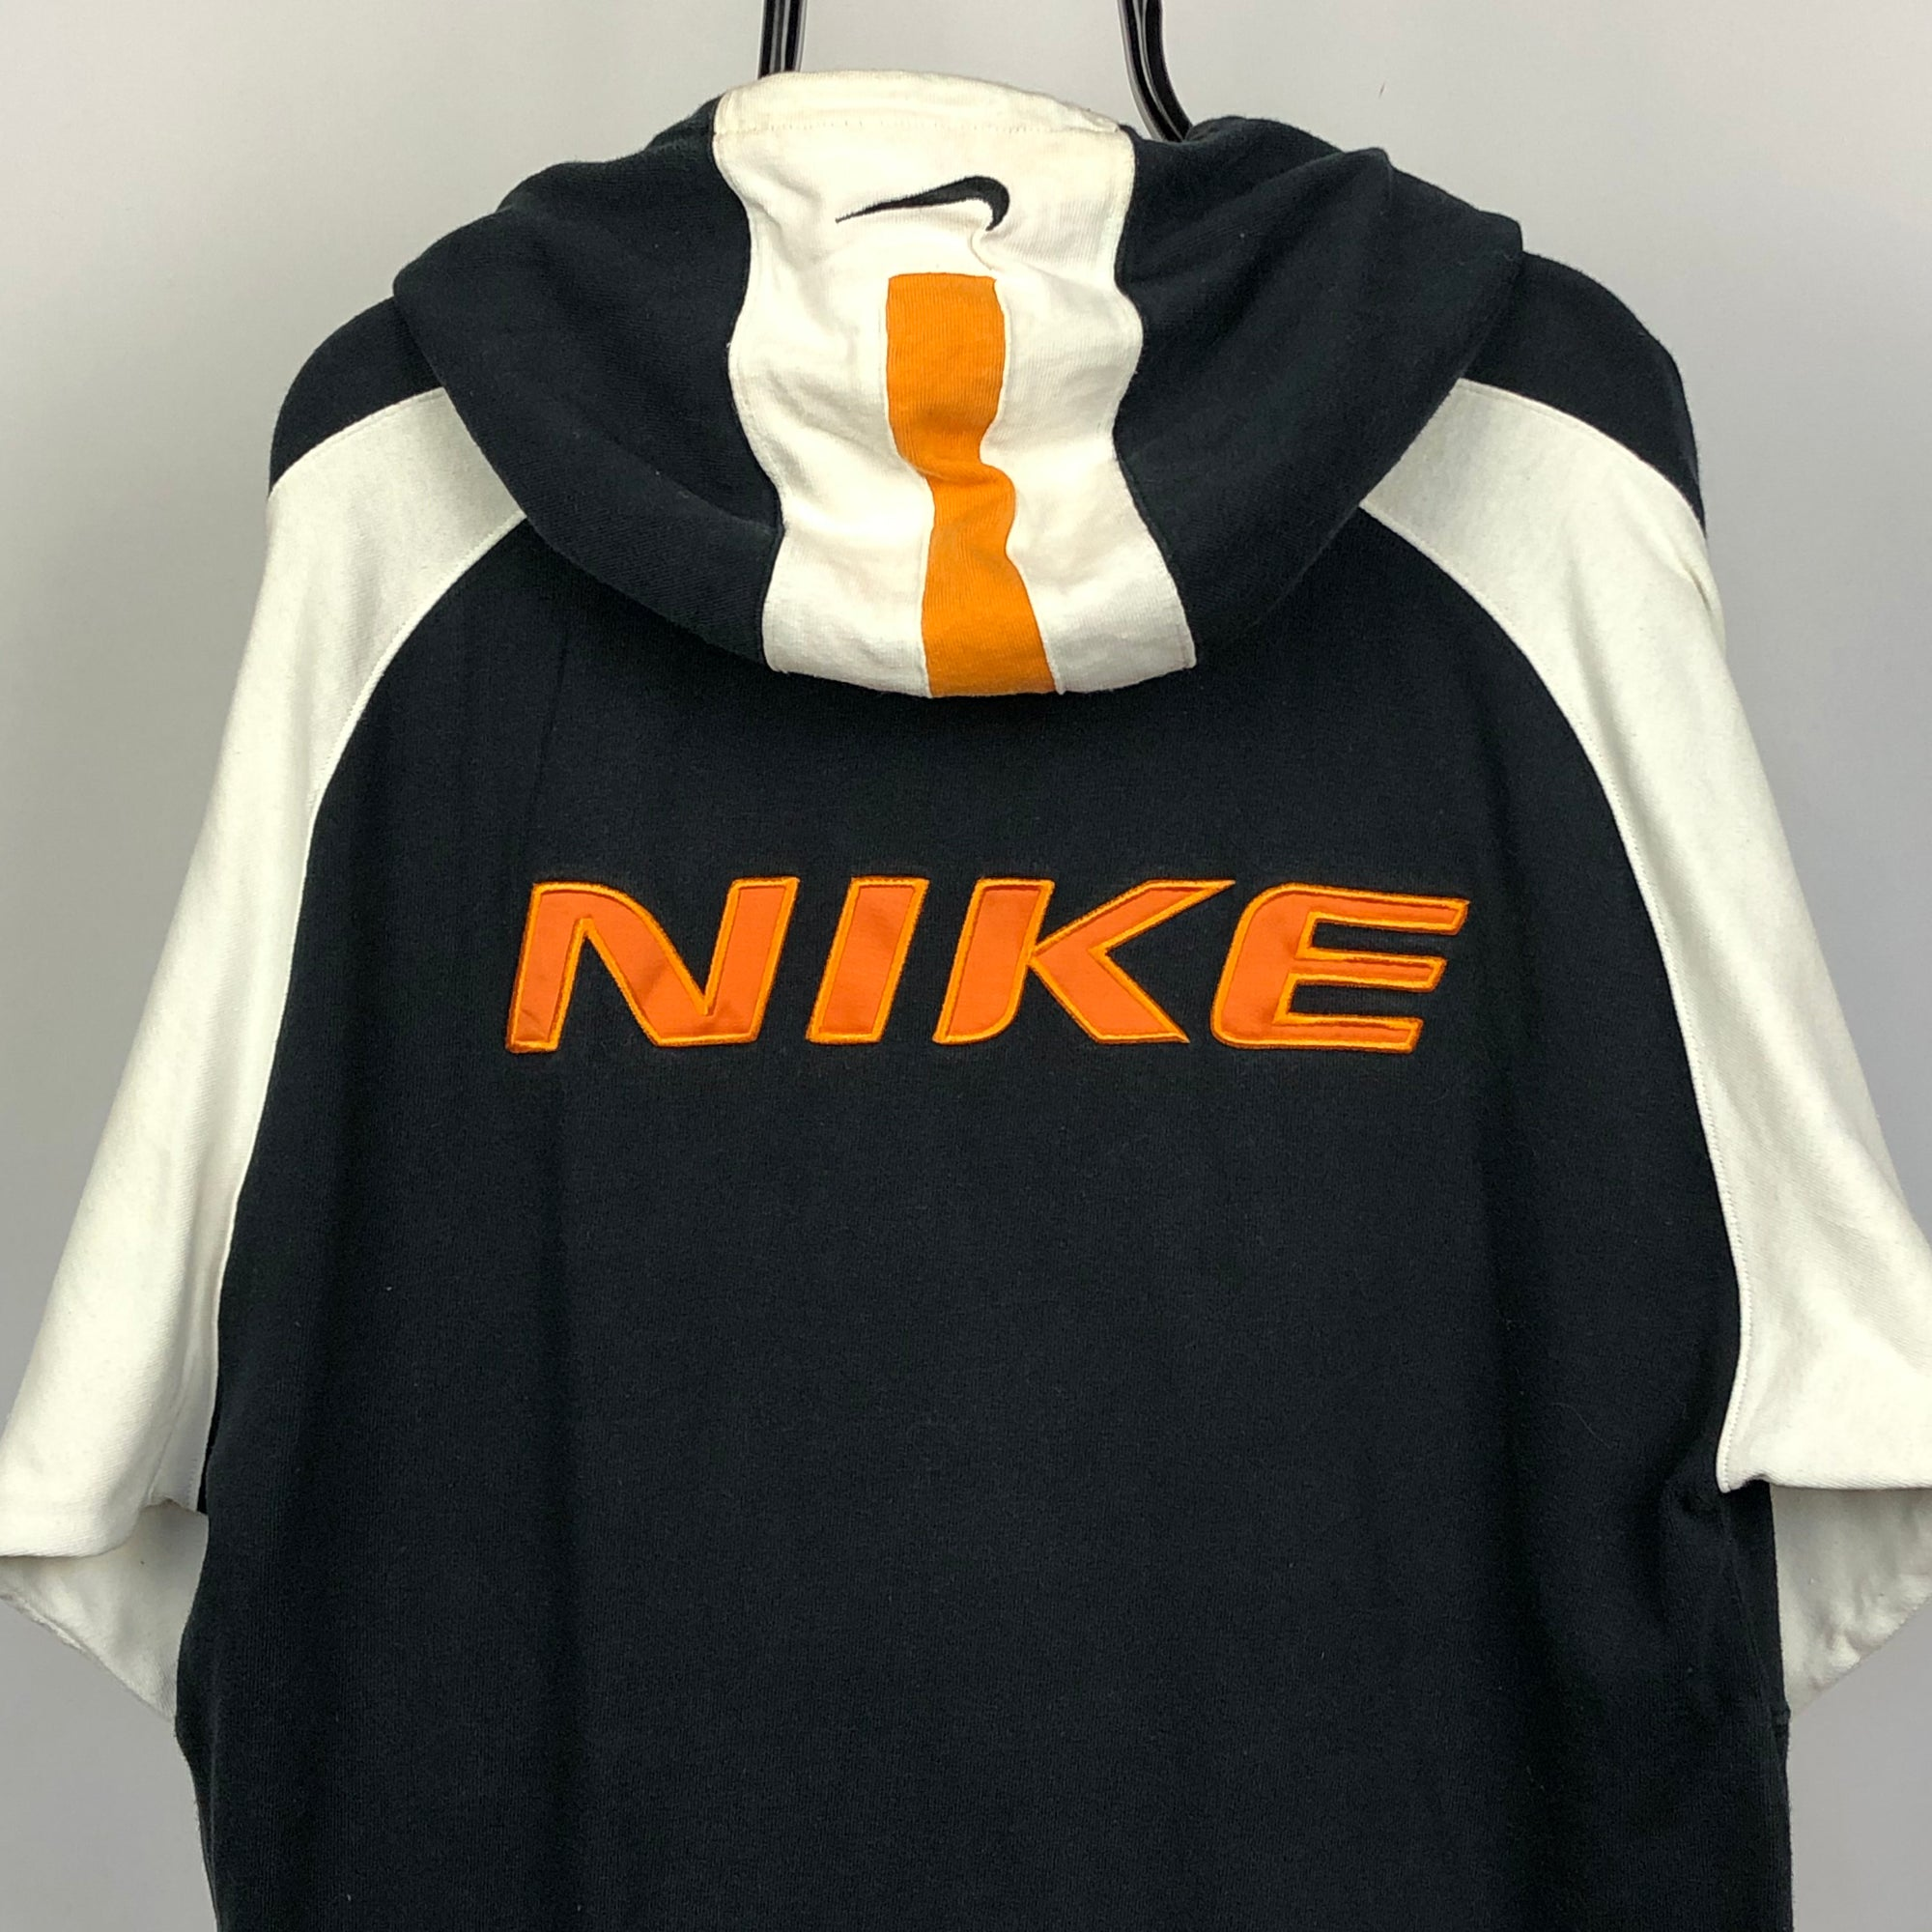 Vintage Nike Spellout Hoodie in Black, White & Orange - Men's Large/Women's XL